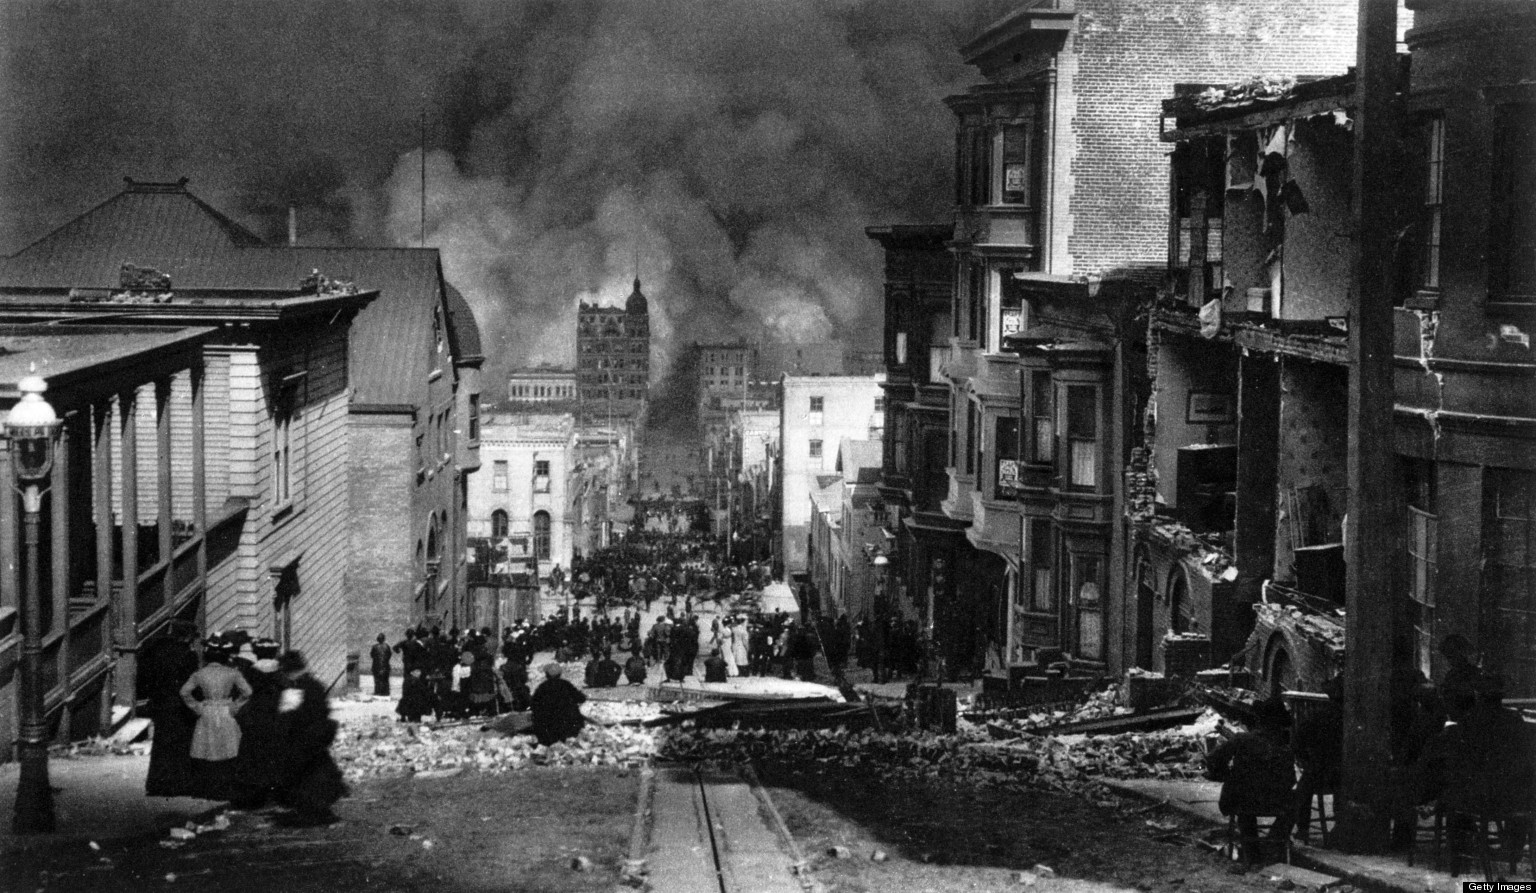 an overview of the 1906 earthquake in san francisco A devastating earthquake begins to shake the city of san francisco in the morning hours of this day in 1906the first of two vicious tremors shook san francisco at 5:13 am, and a second followed.